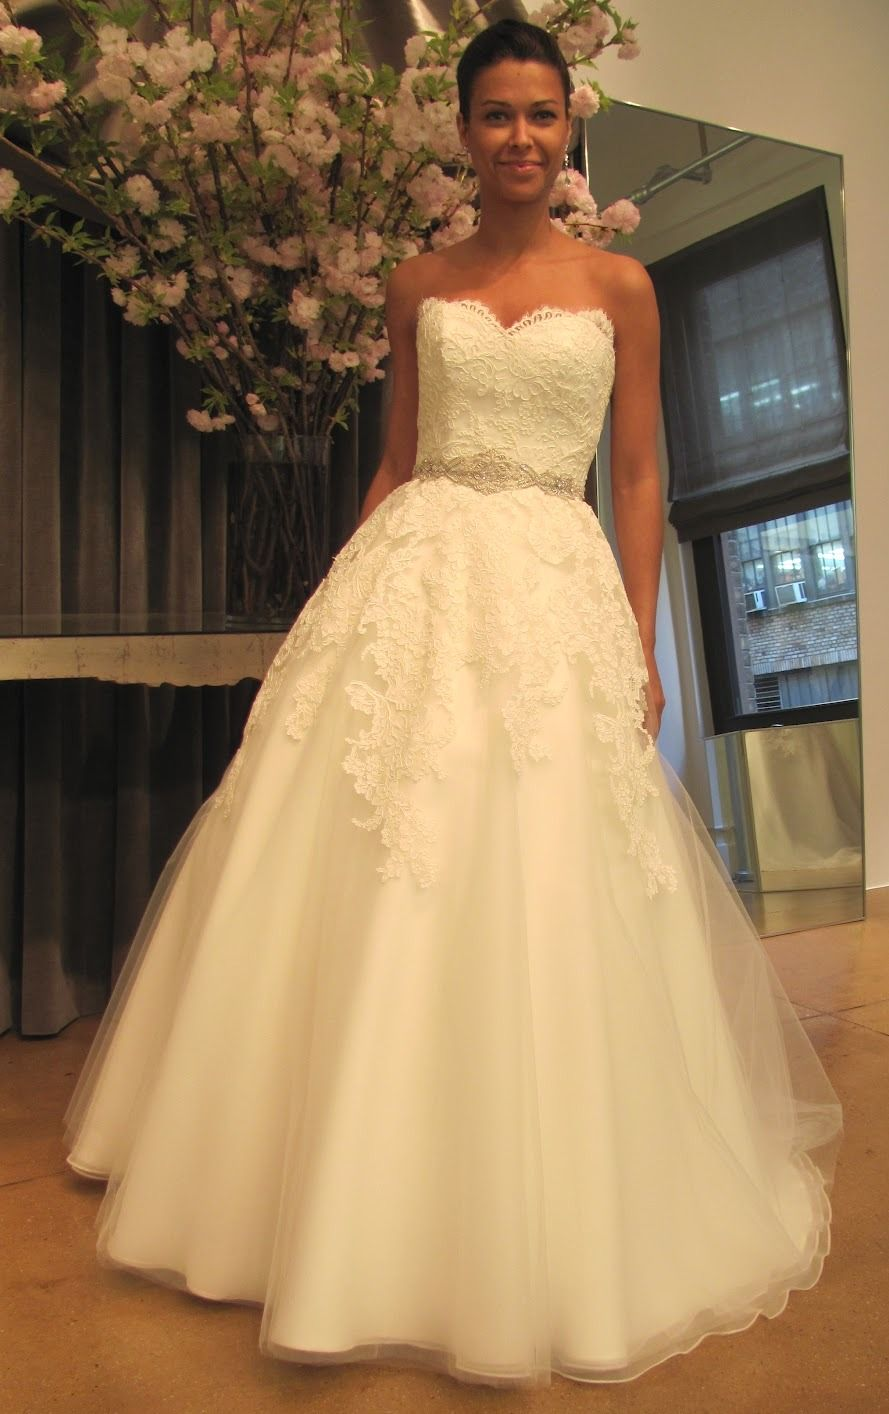 Full aline gown with alencon lace and a sweetheart neckline love